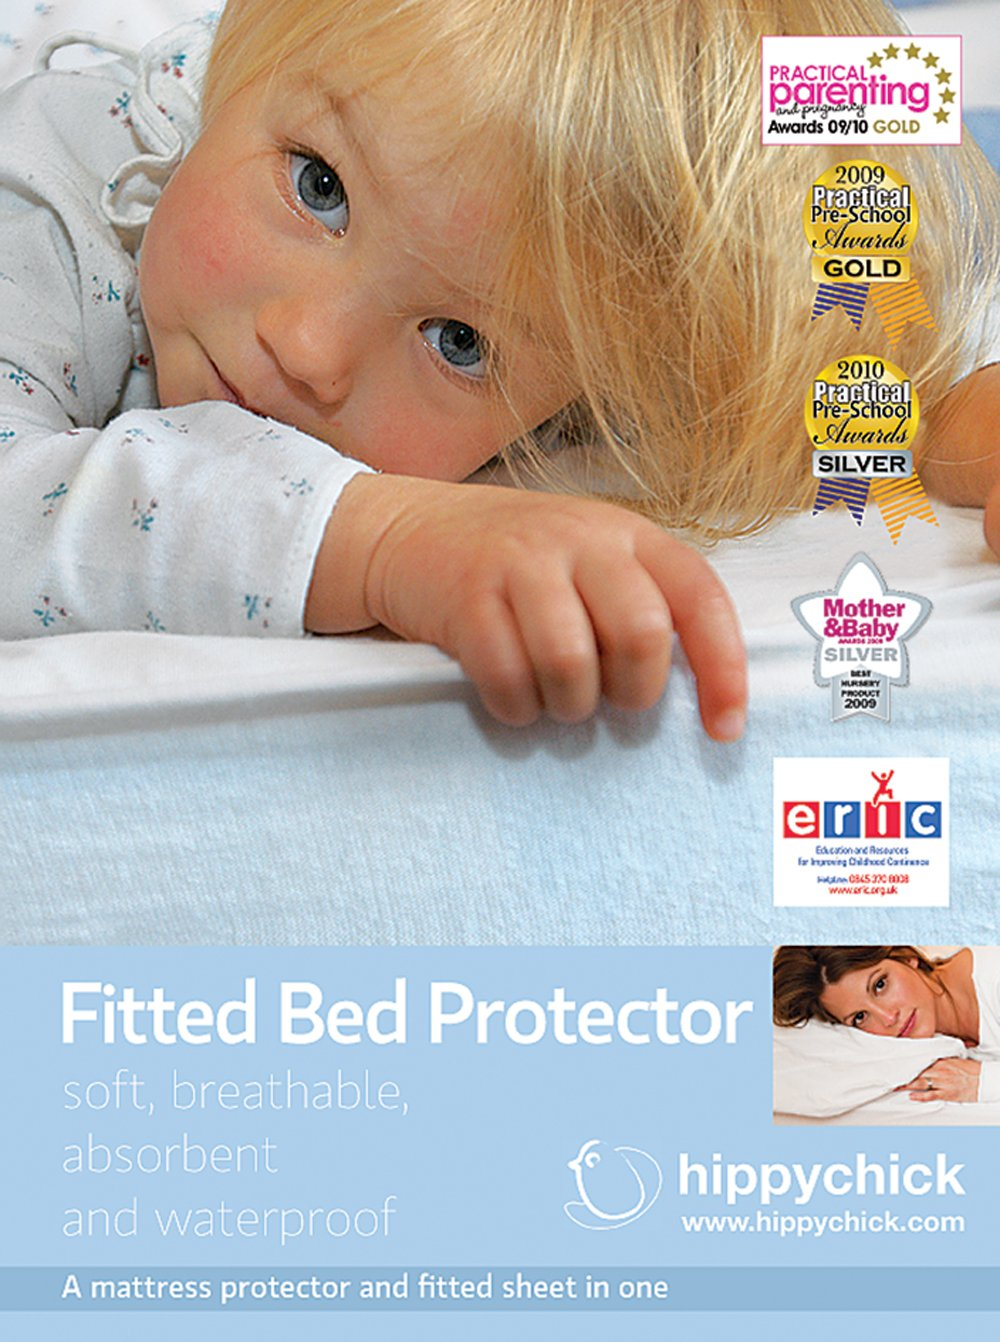 Hippychick Mattress Protector Fitted Sheet, 60 x 120 cm Cot HCFBP0C